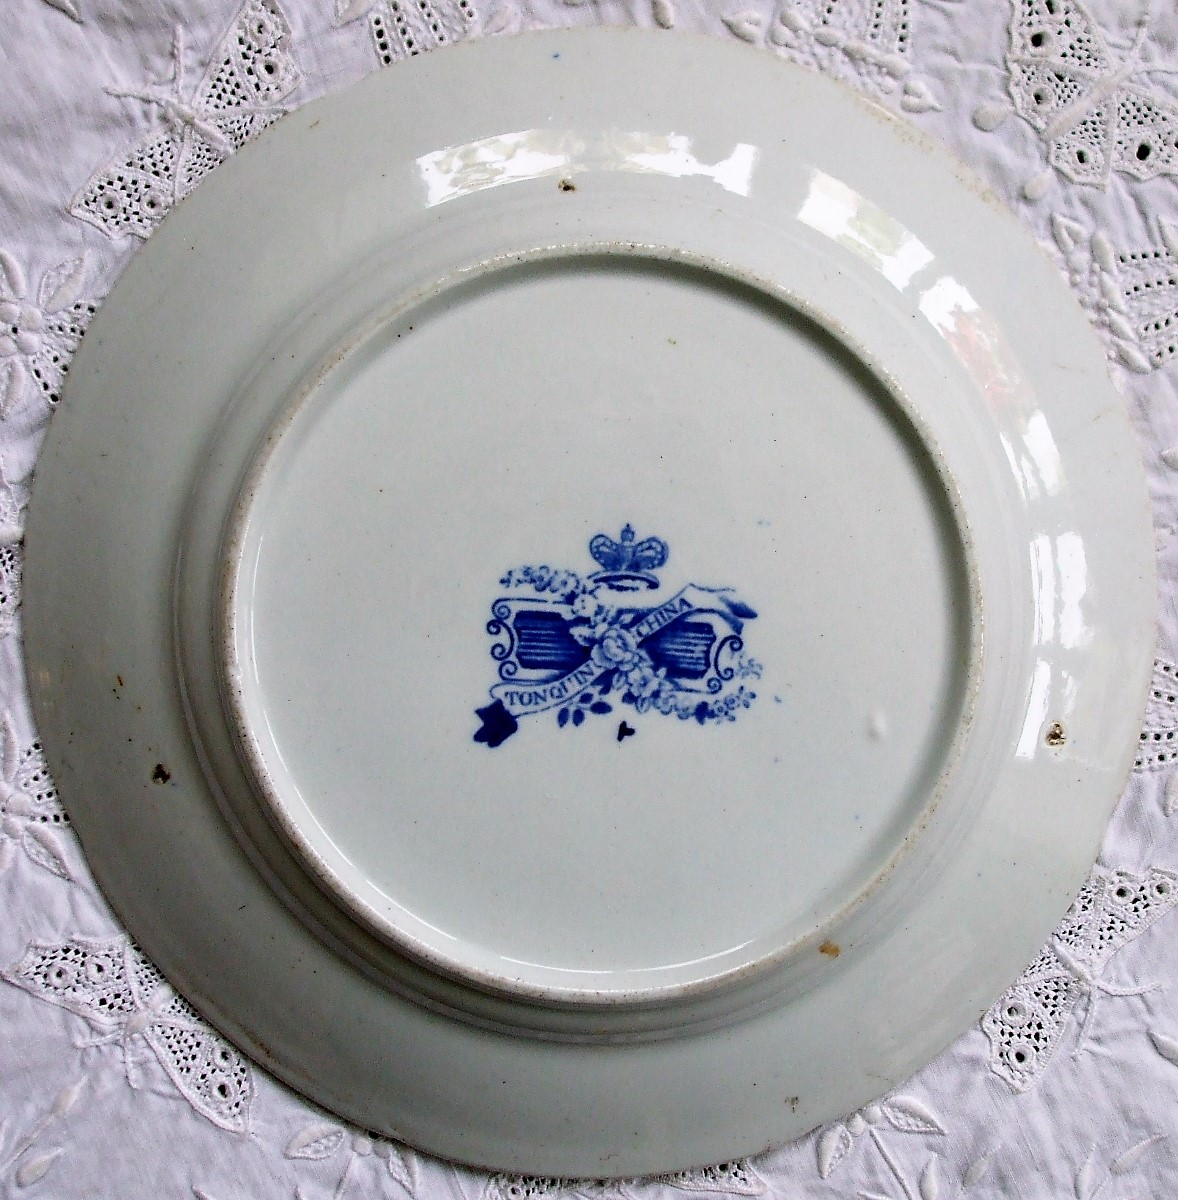 Tongquin China Plate